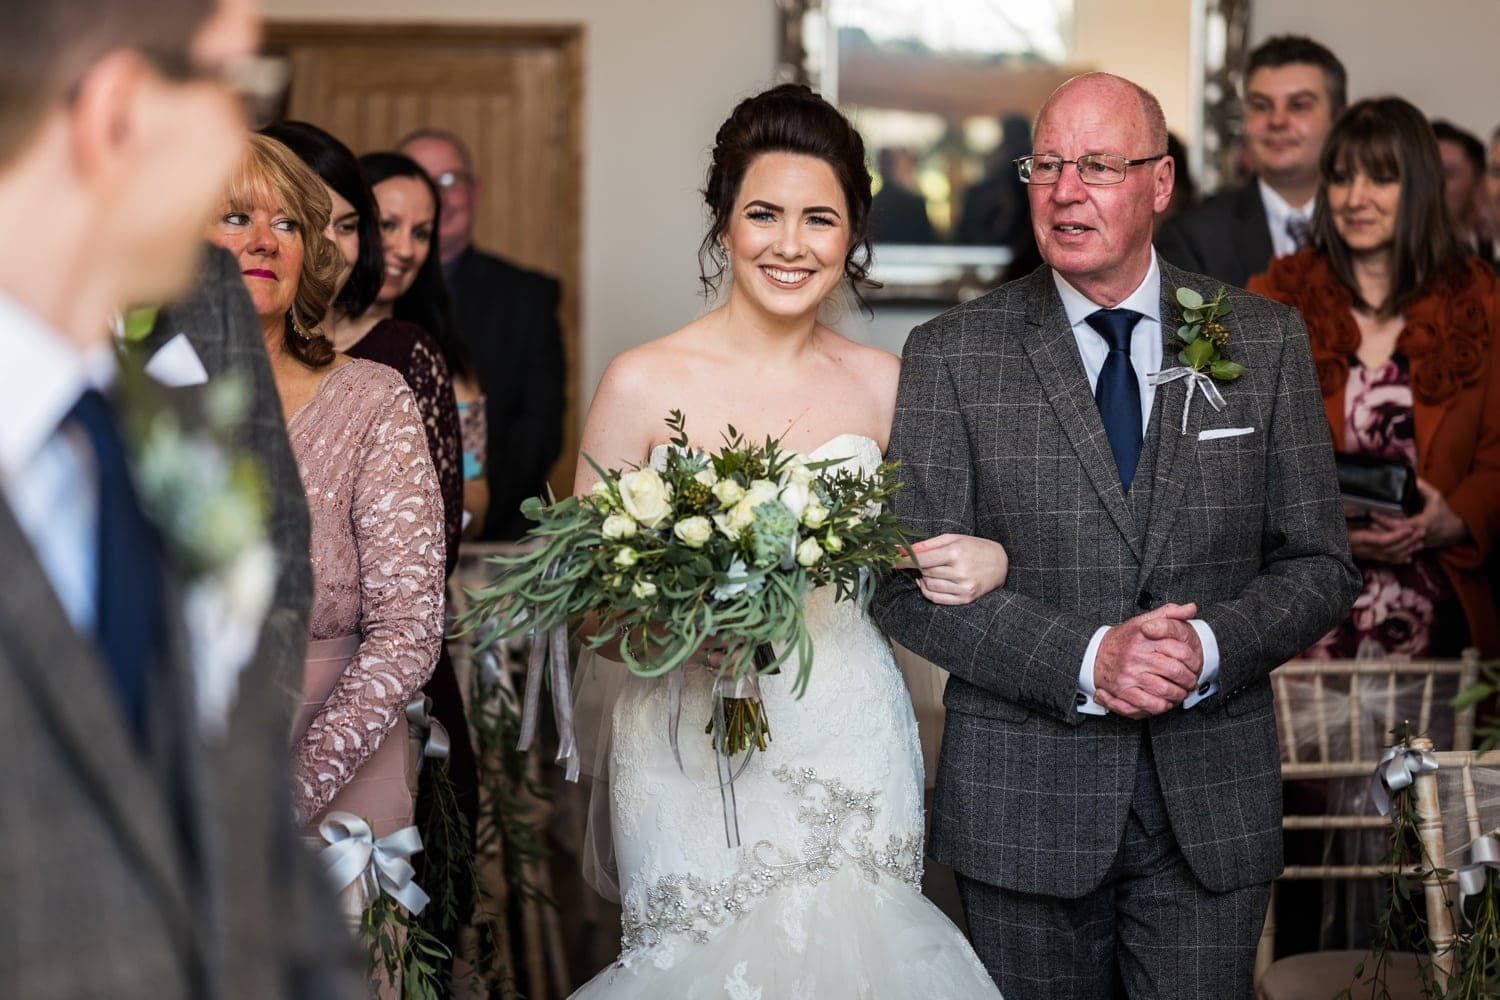 Oldwalls wedding in Gower, South Wales